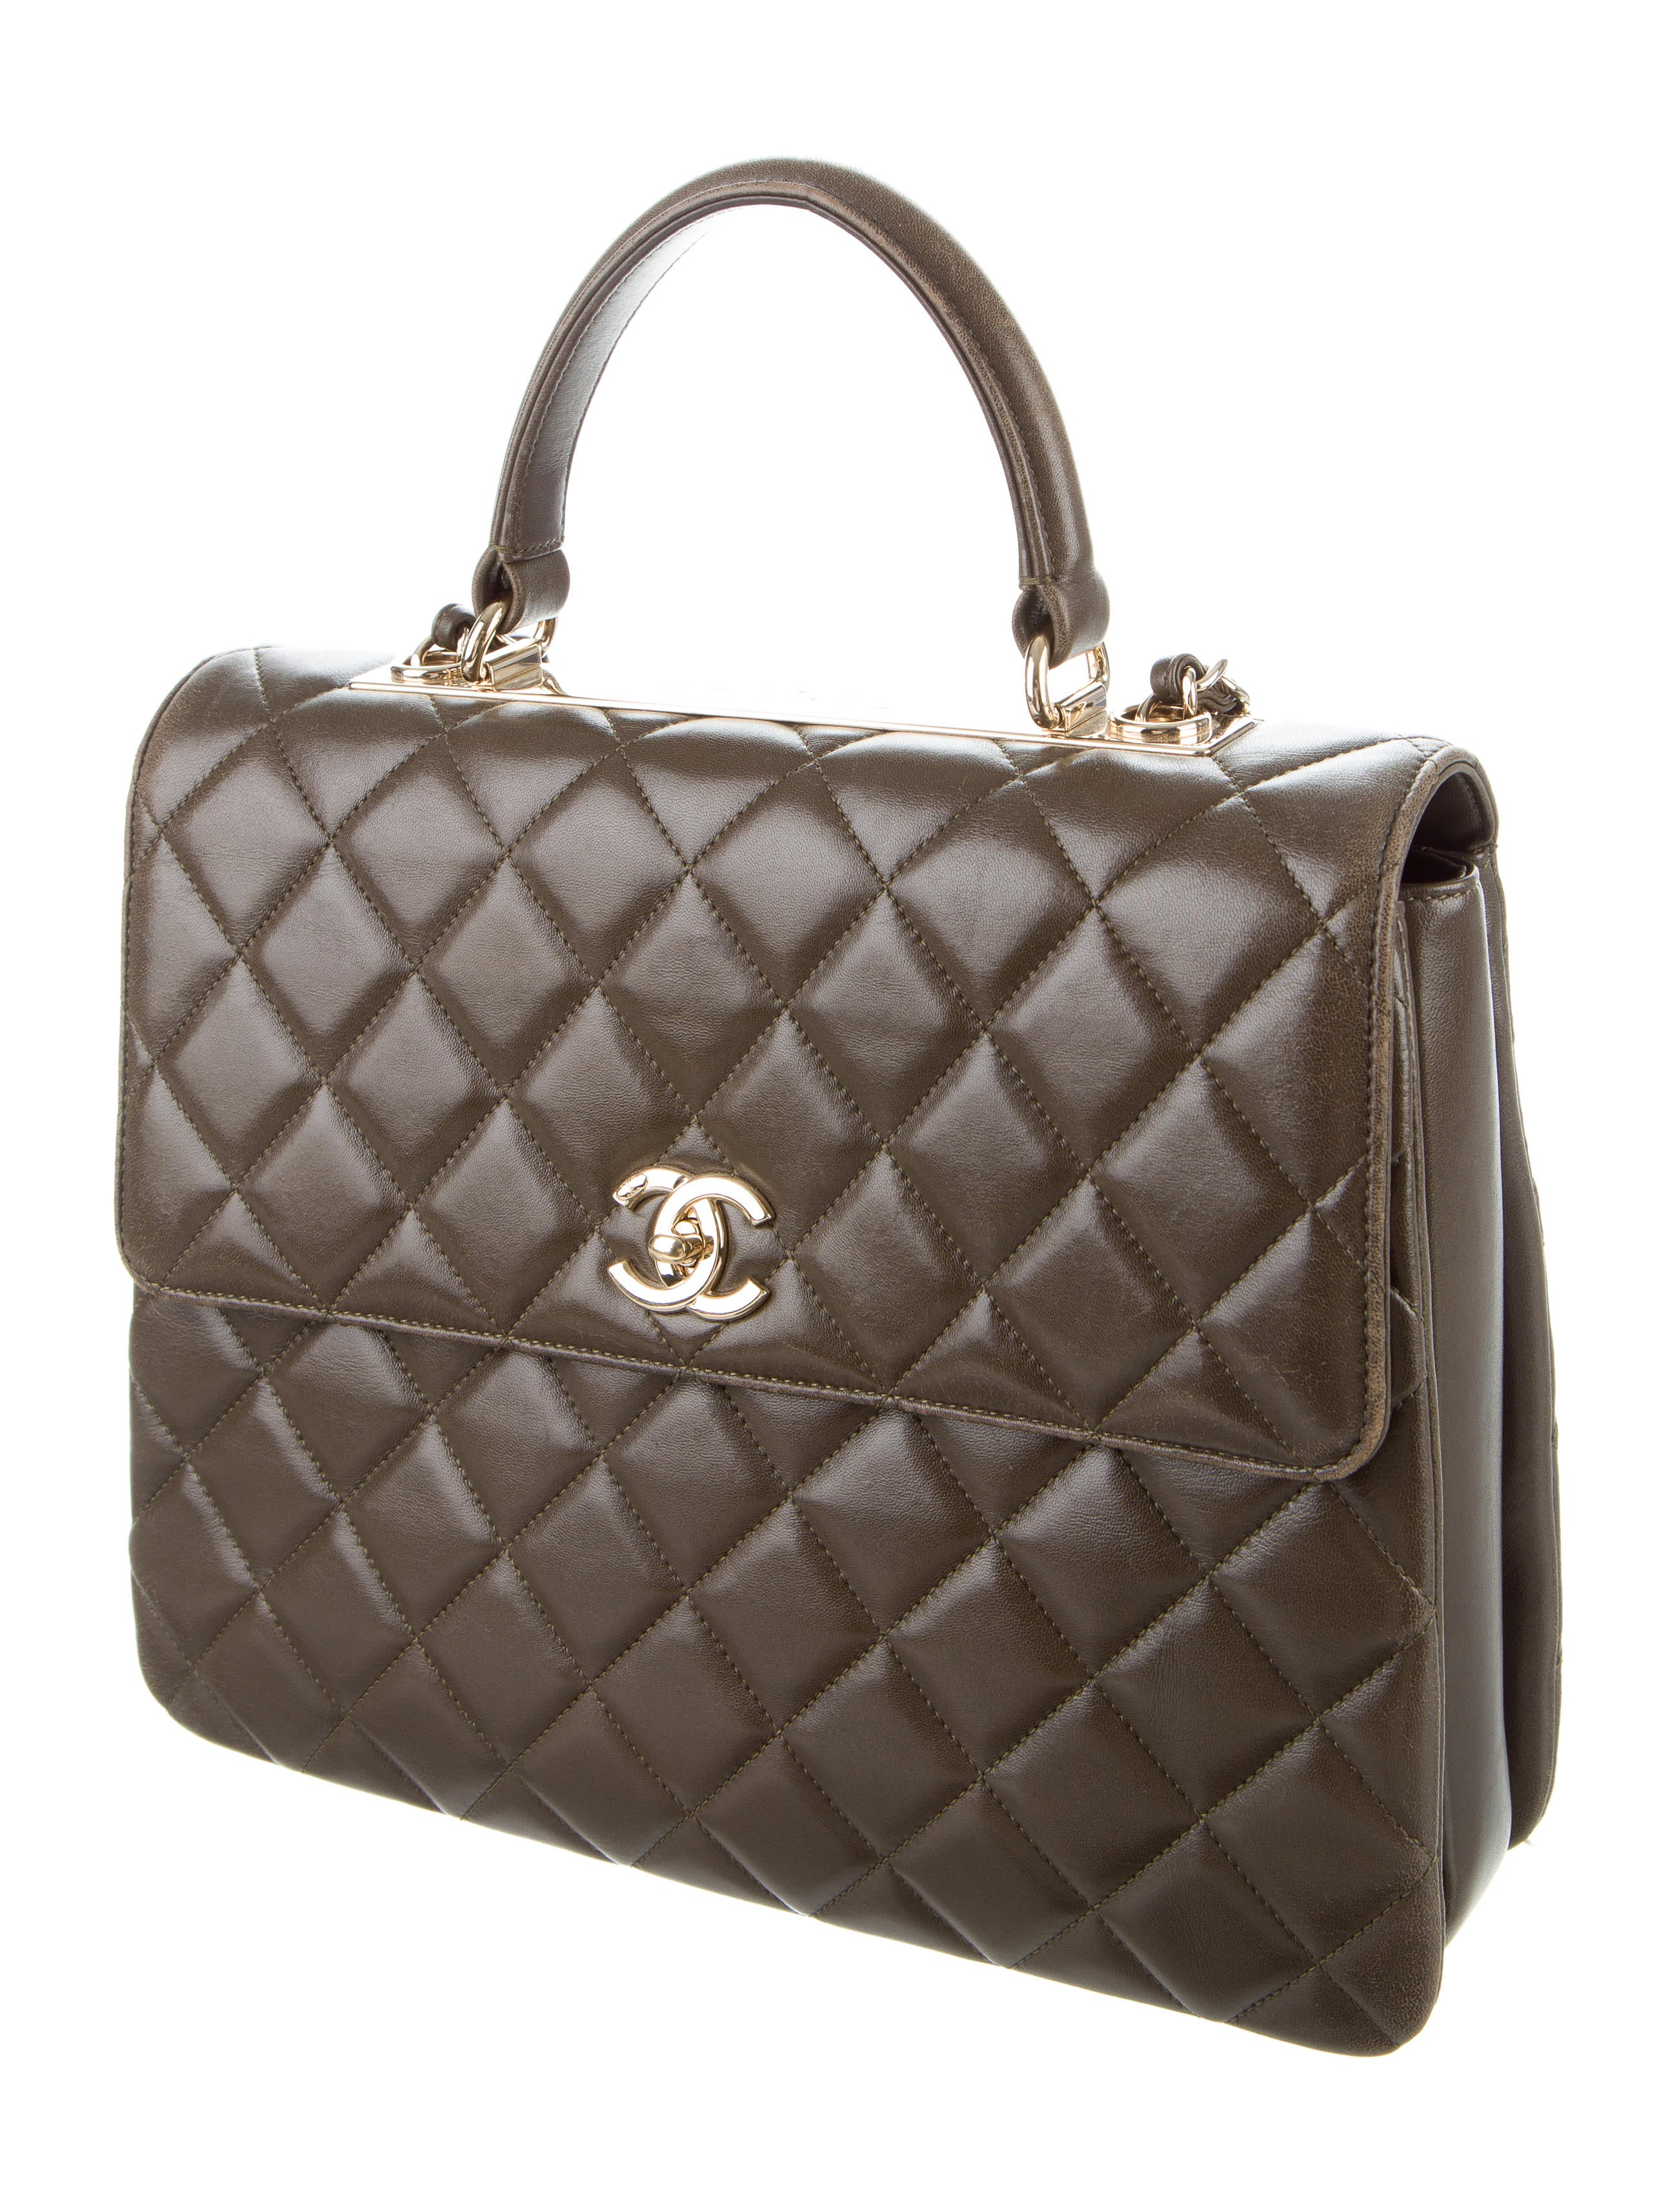 1b8ffc91a392e8 Chanel Trendy Cc Bag 2017 | Stanford Center for Opportunity Policy ...